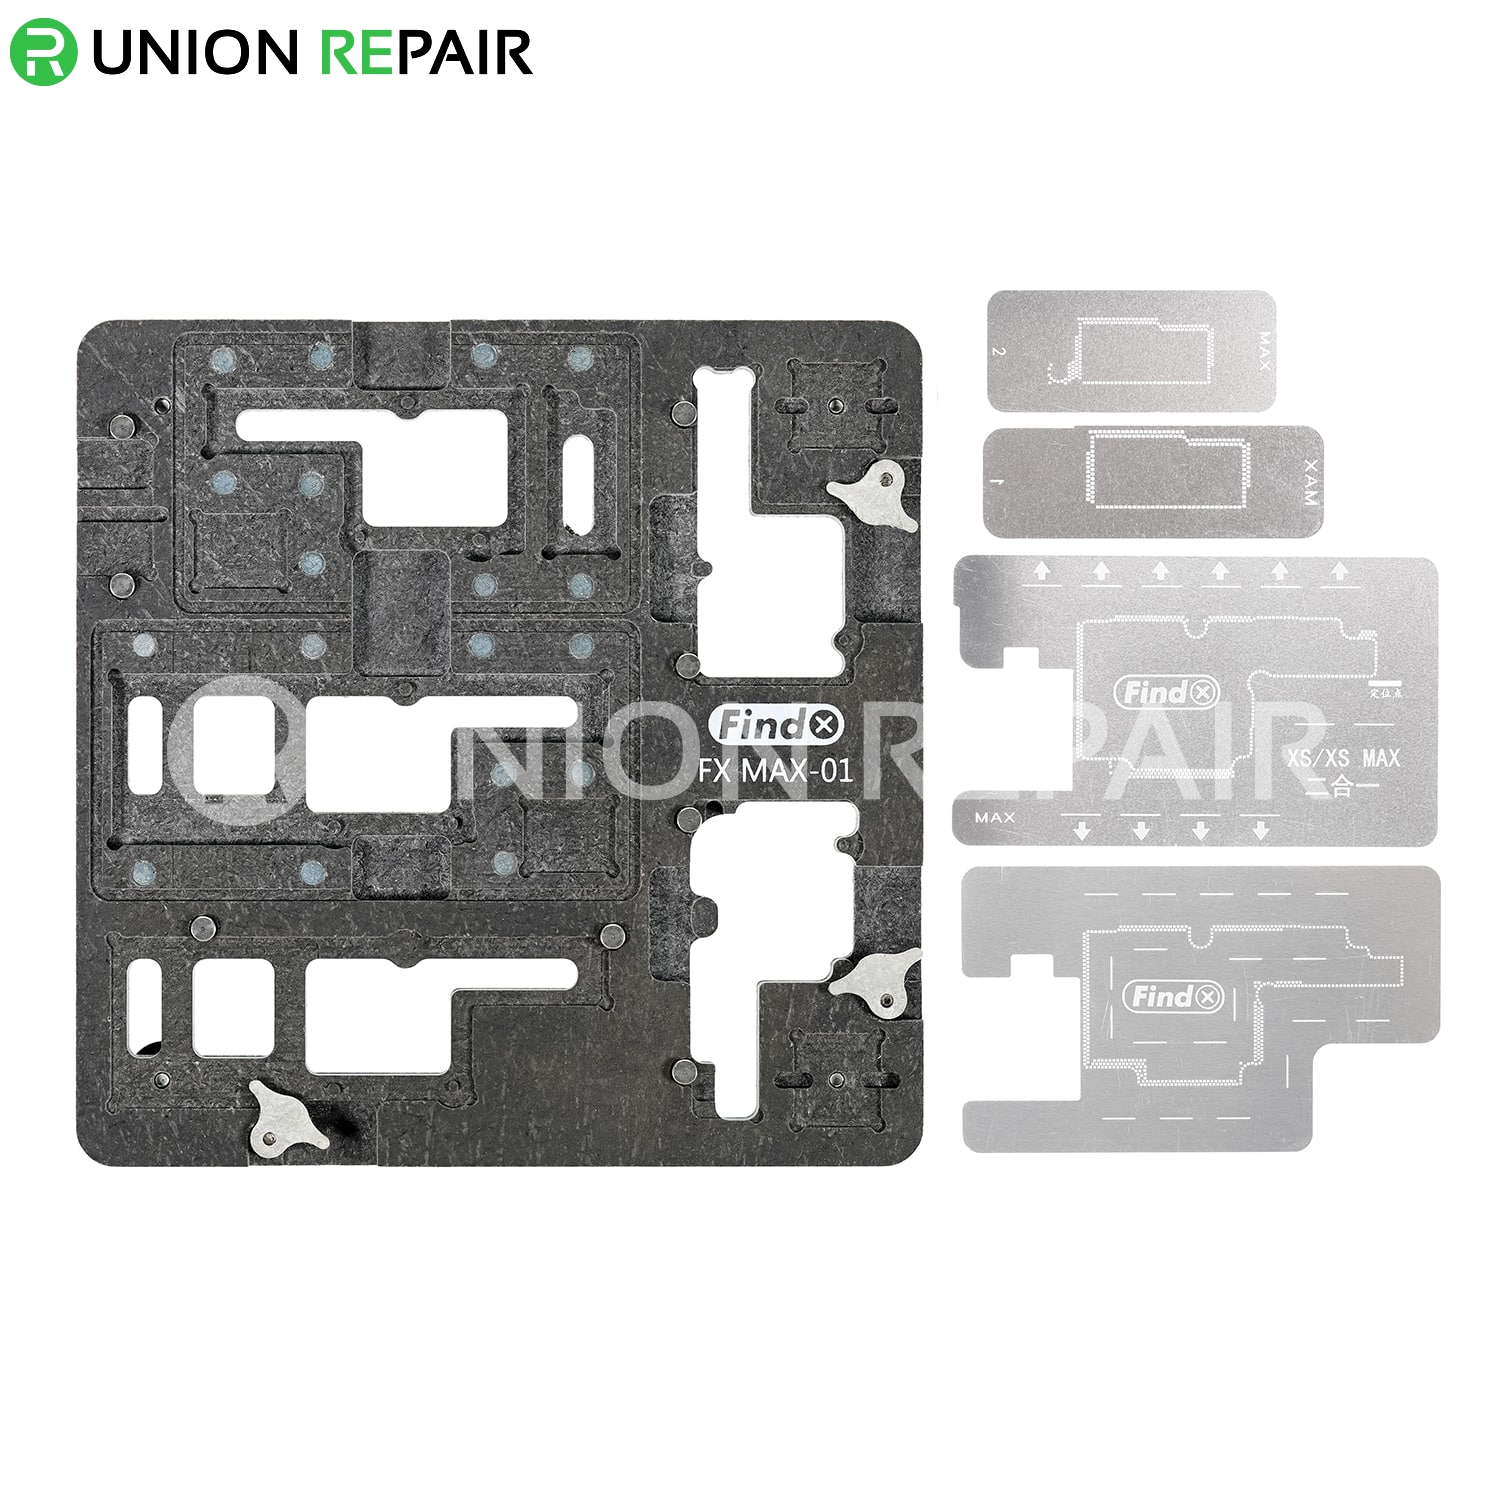 FX MAX-01 PCB Holder Repair Clamp for iPhone X #FindX/Xs/XsMax